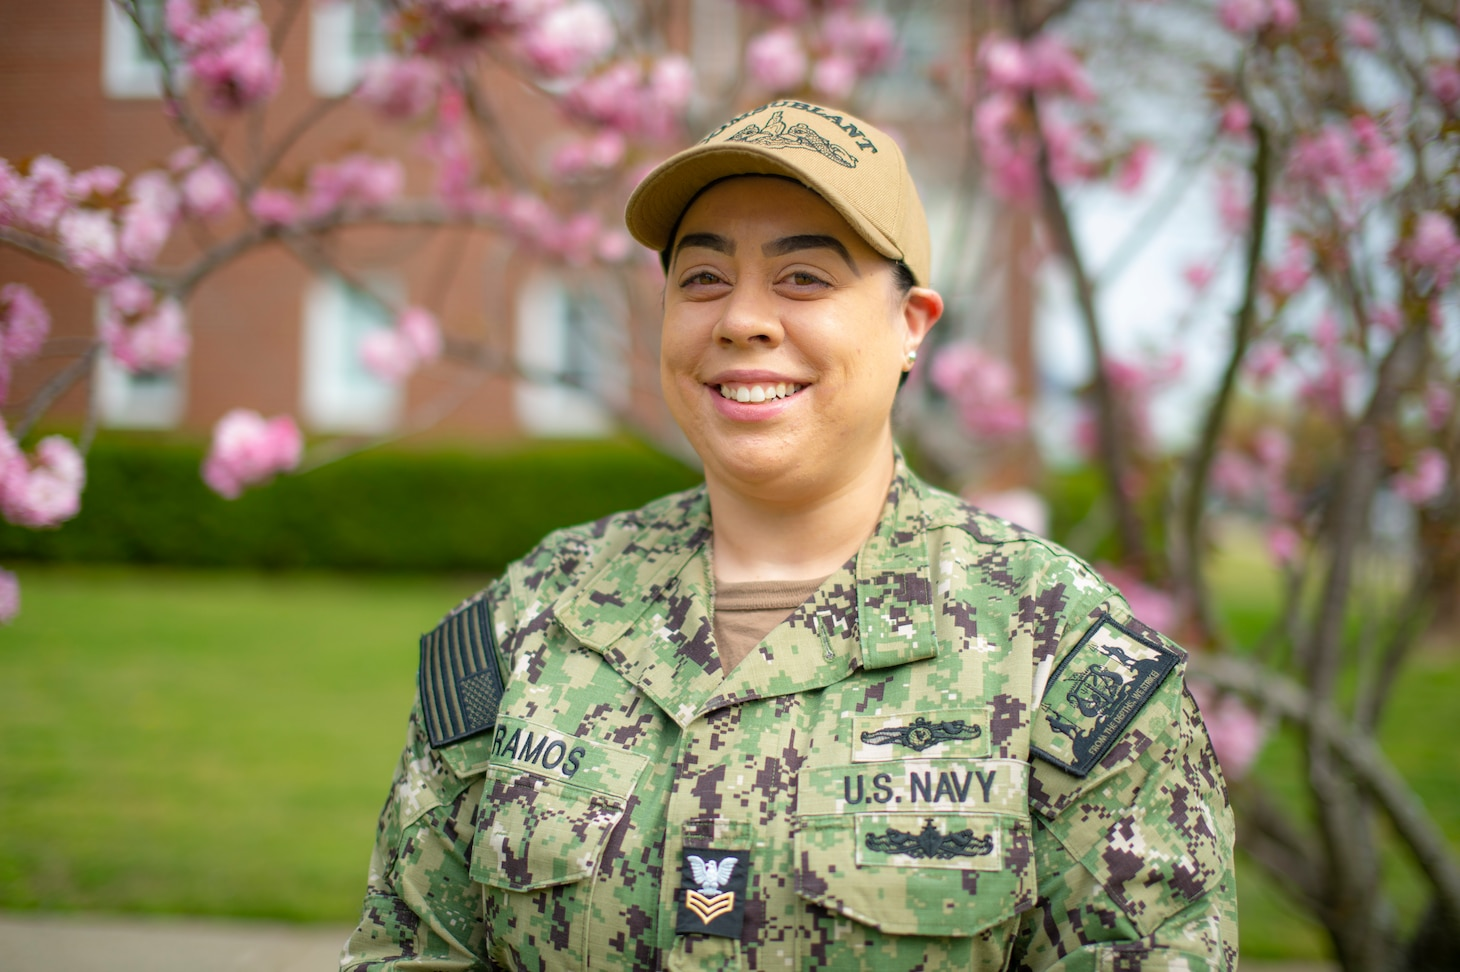 Information Systems Technician 1st Class Corinna Ramos, assigned to Commander, Submarine Force Atlantic (COMSUBLANT), stands outside of COMSUBLANT headquarter in Norfolk, Va., April 15, 2021.